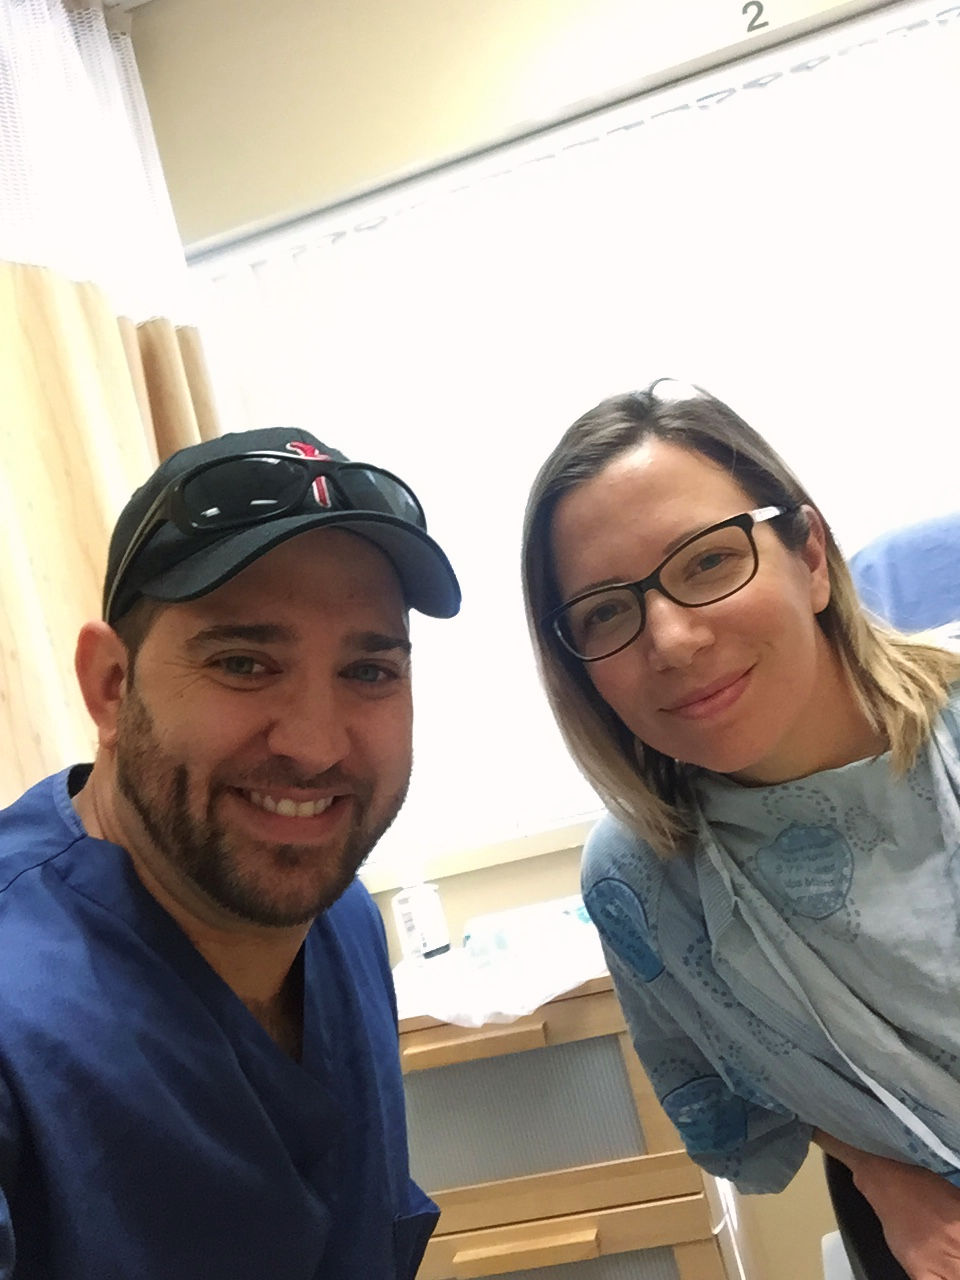 Sandra and her husband, Jason, at their first frozen embryo transfer.